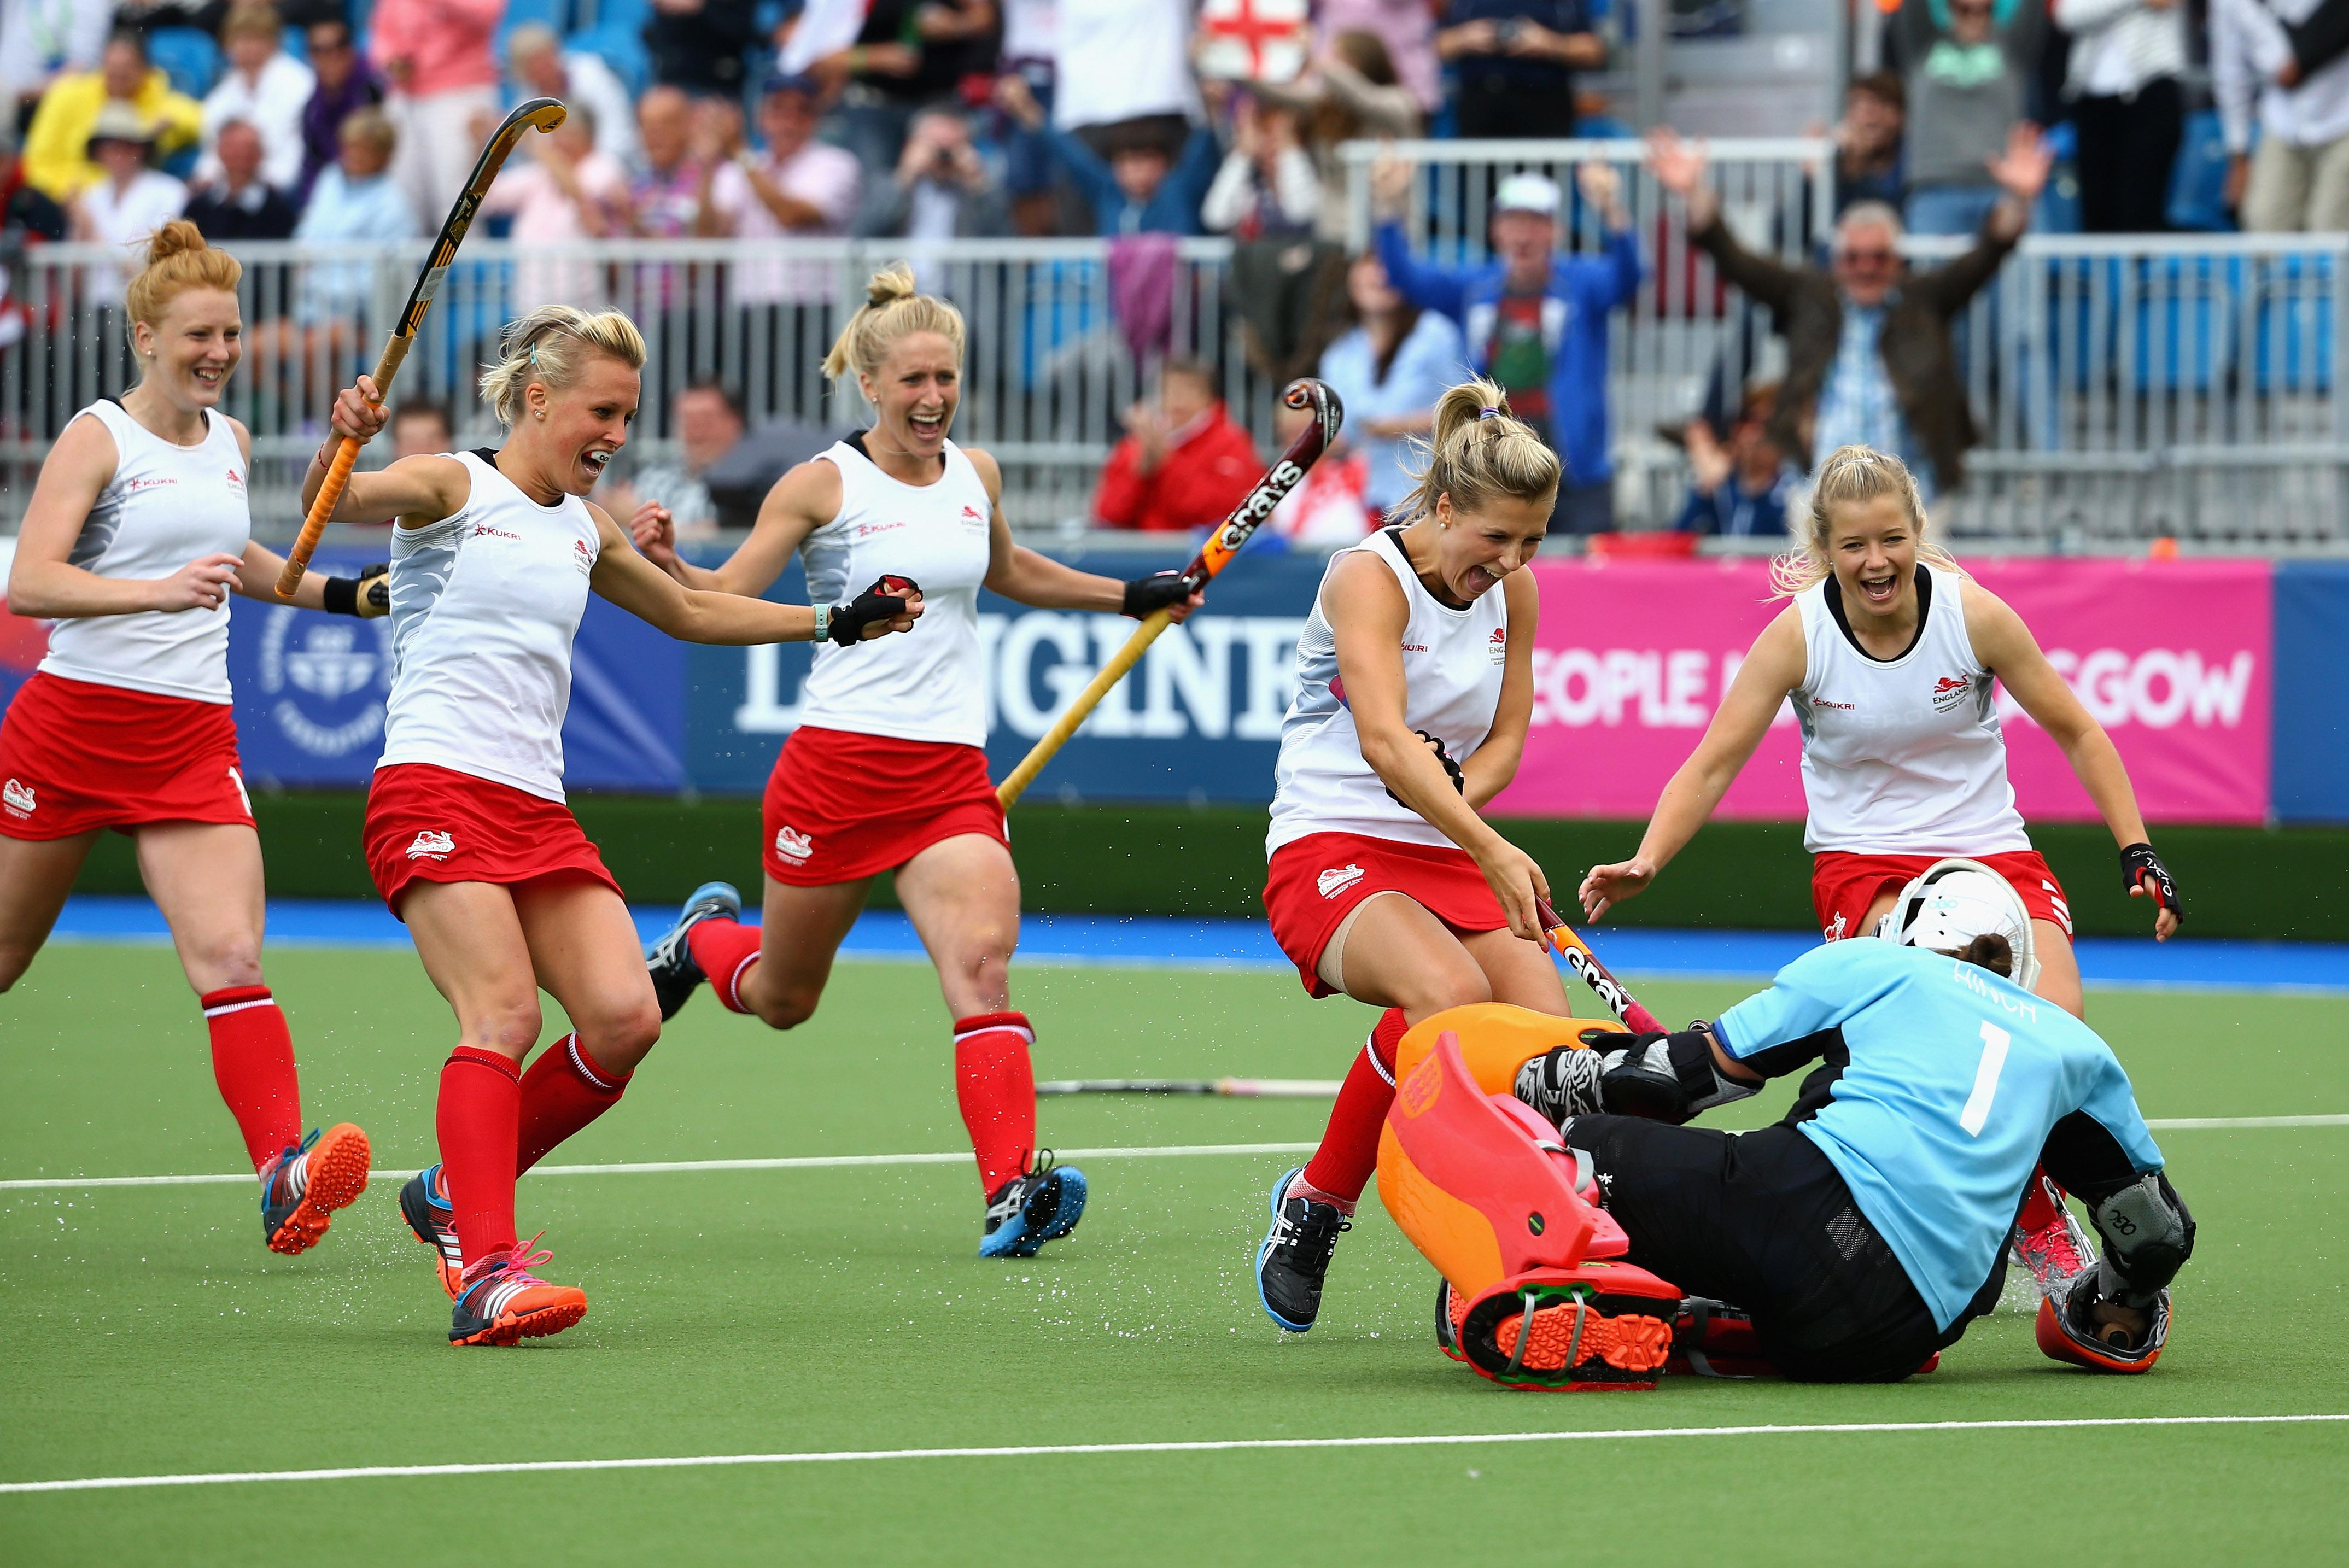 England won the bronze medal at the 2018 Commonwealth Games